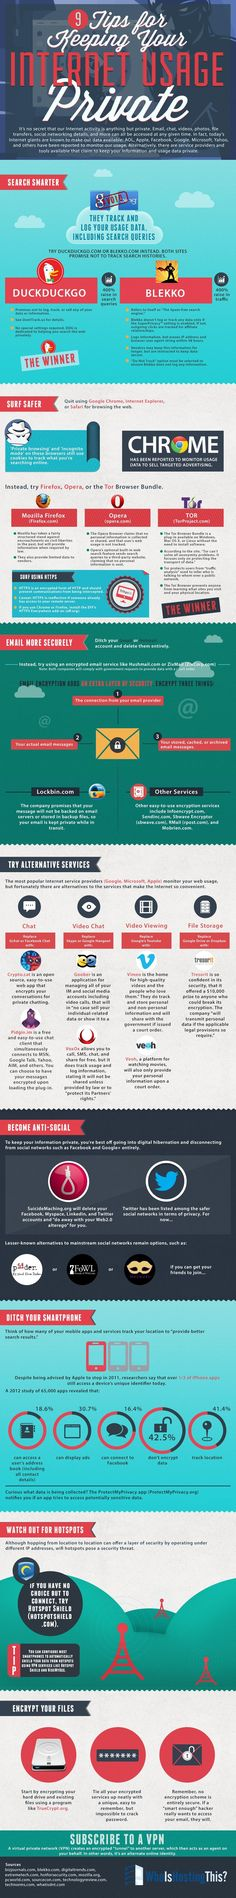 9 Tips for Keeping Your Internet Usage Private [Infographic] by Who Is Hosting This: The Blog